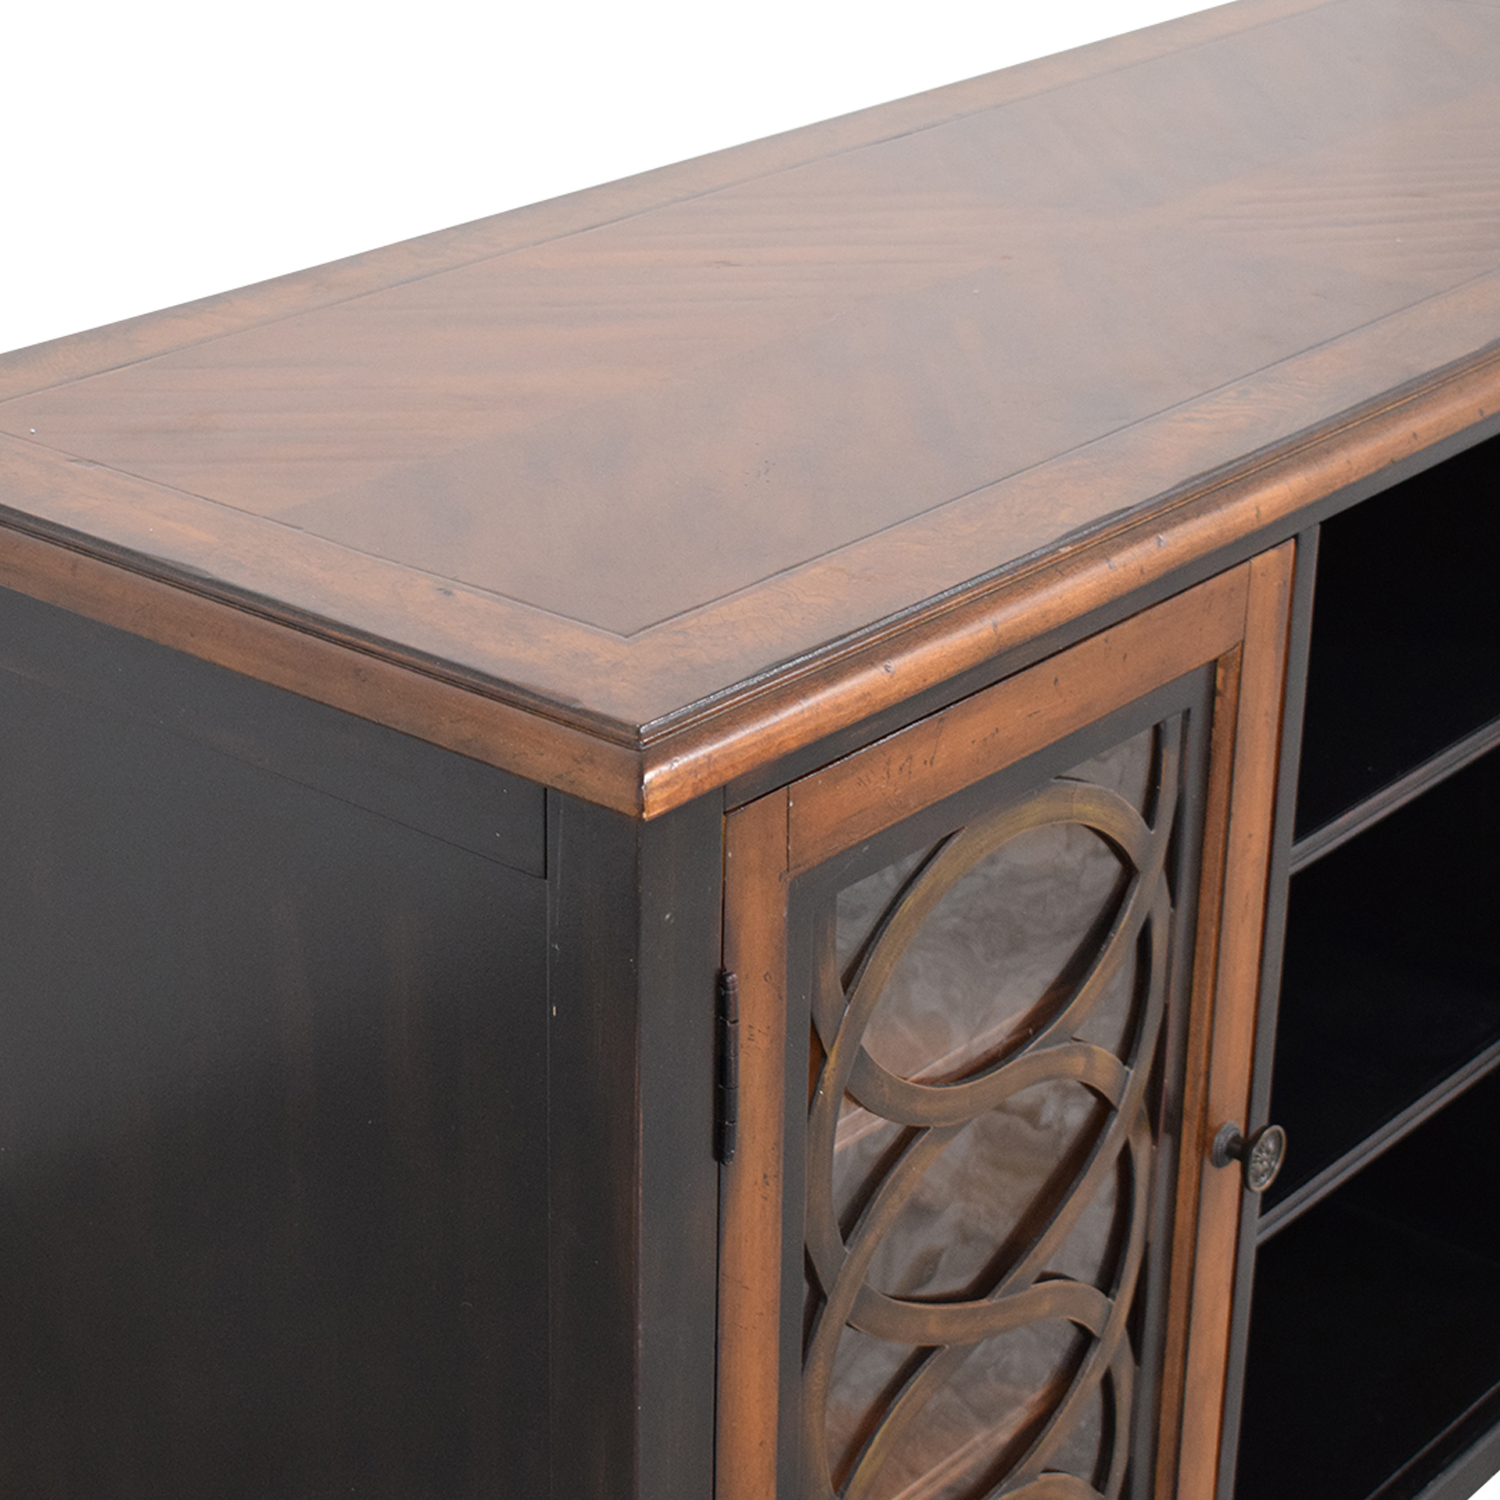 Hooker Furniture Two Tone Media Console / Storage